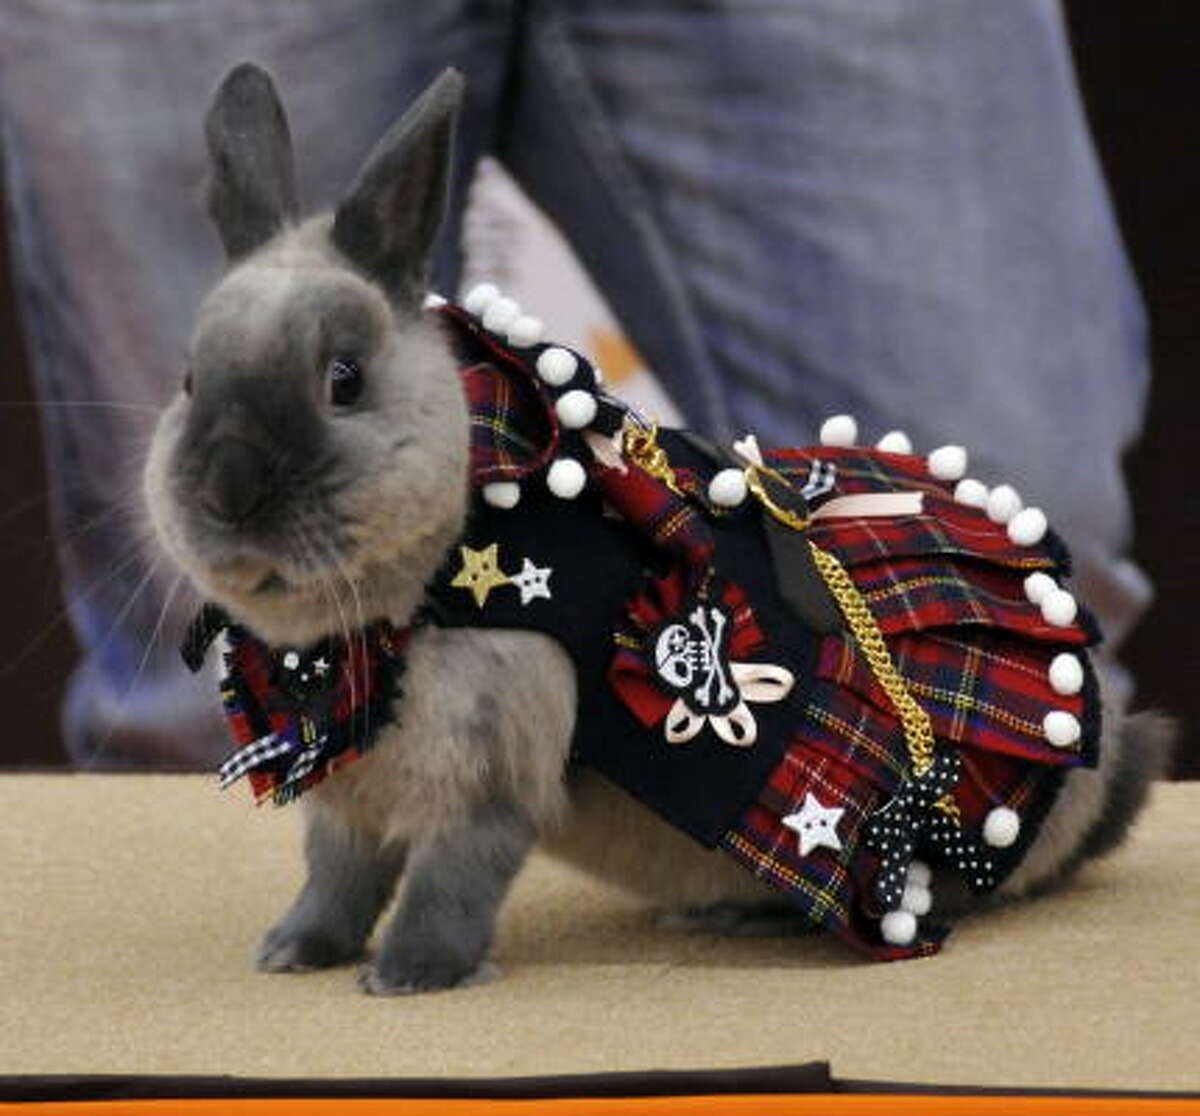 A rabbit wearing a tartan suit competes during a rabbit fashion contest Sunday at the Rabbit Festa in Yokohama city in Kanagawa prefecture, suburban Tokyo.